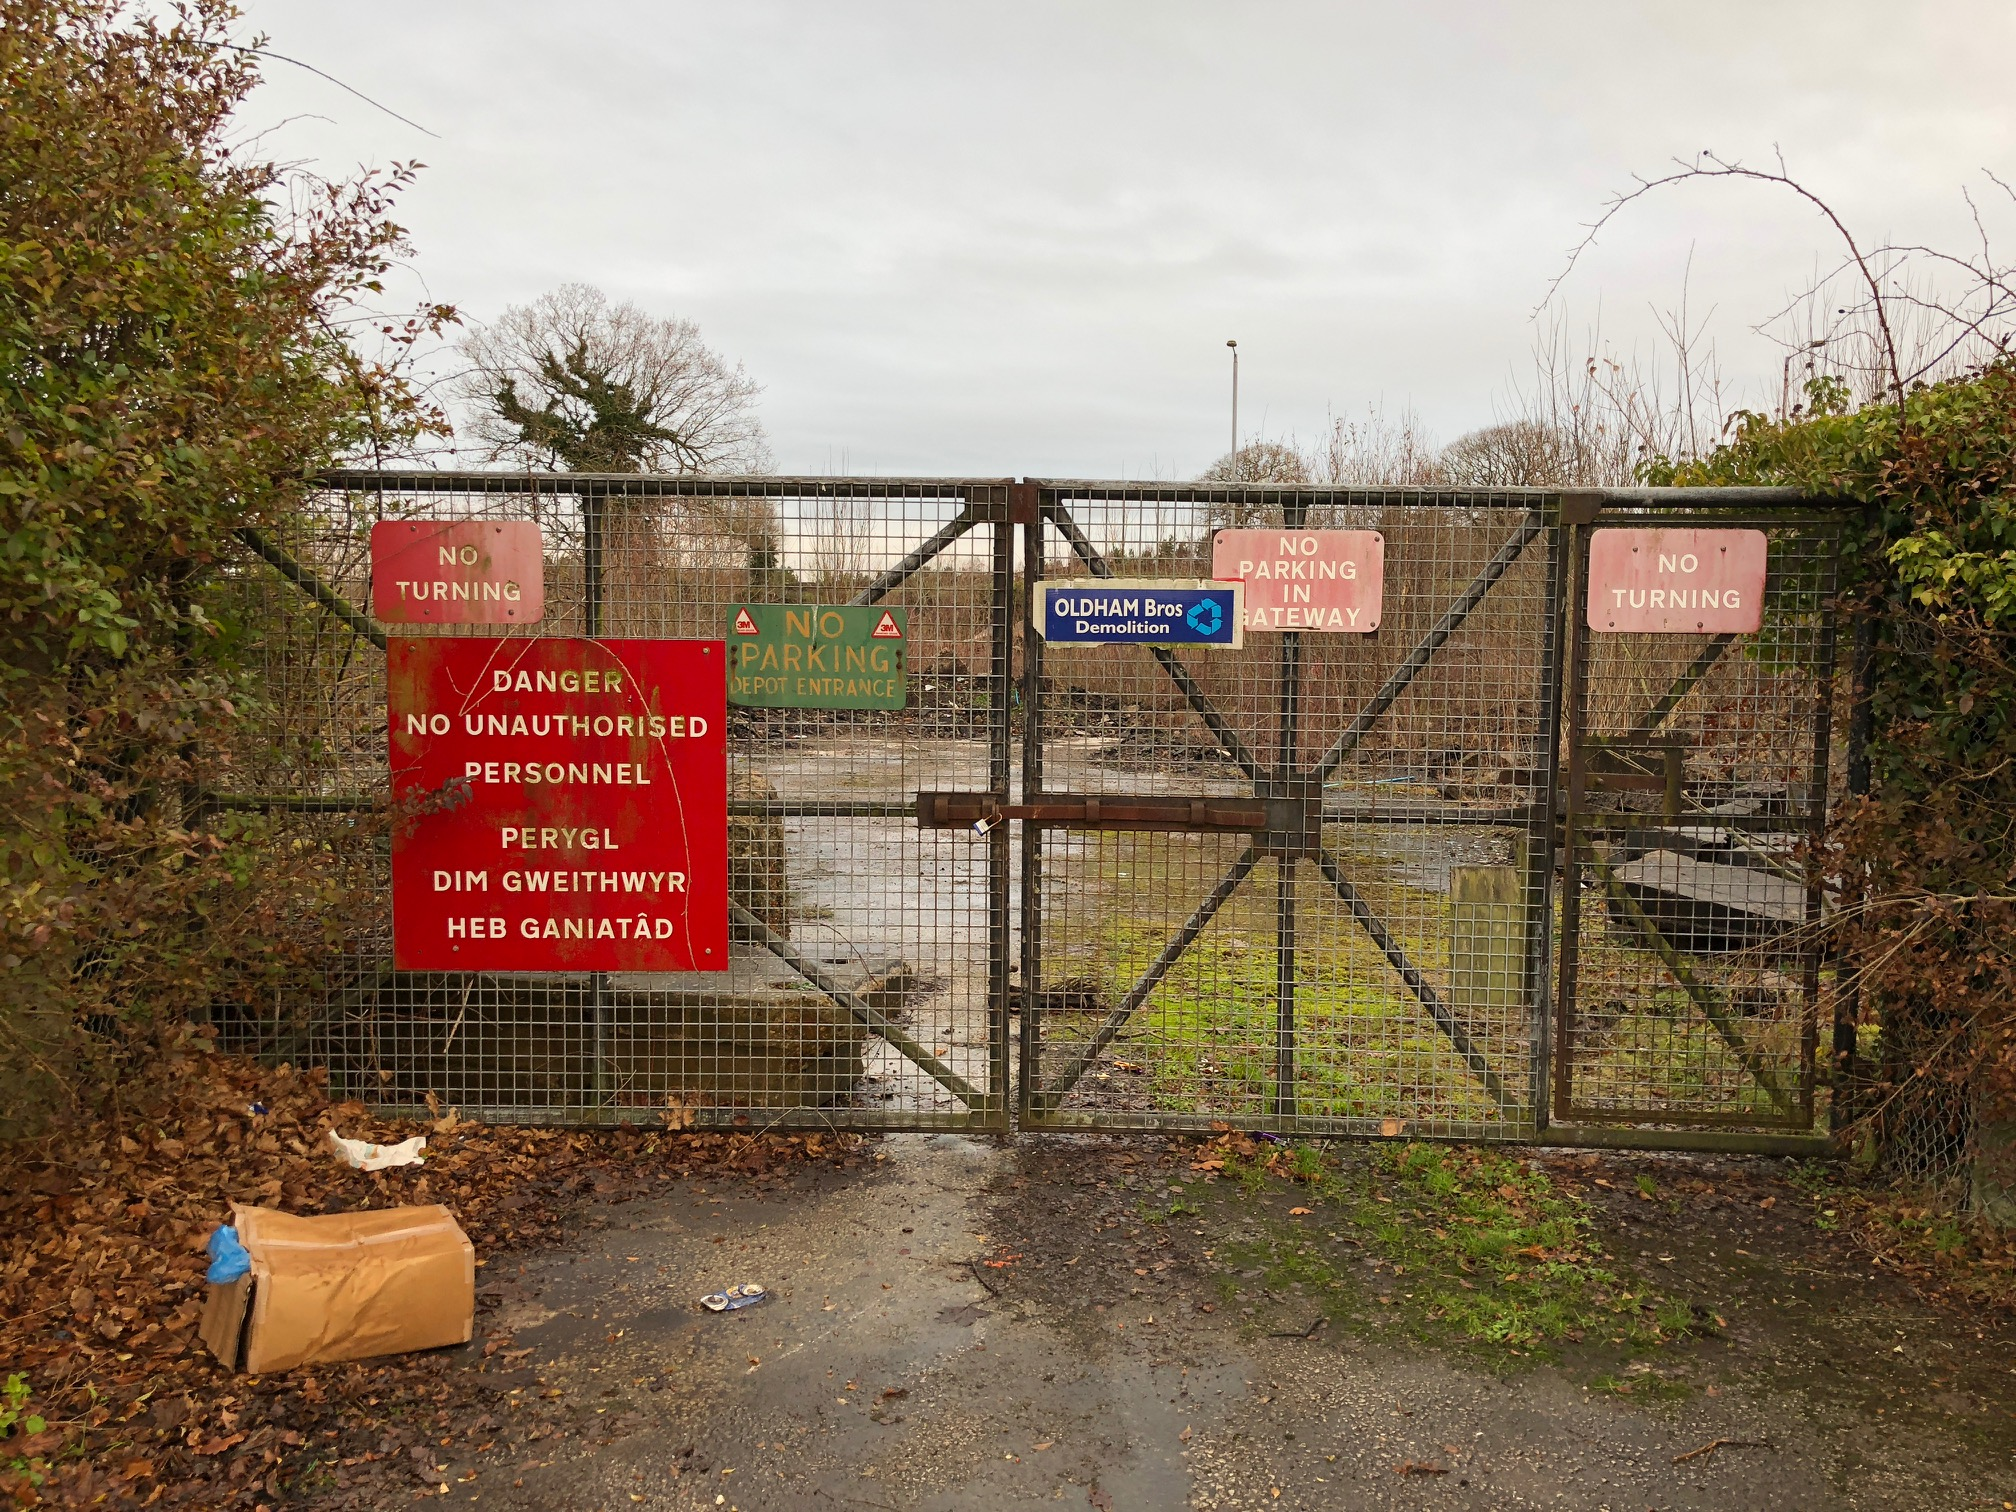 The site entrance today